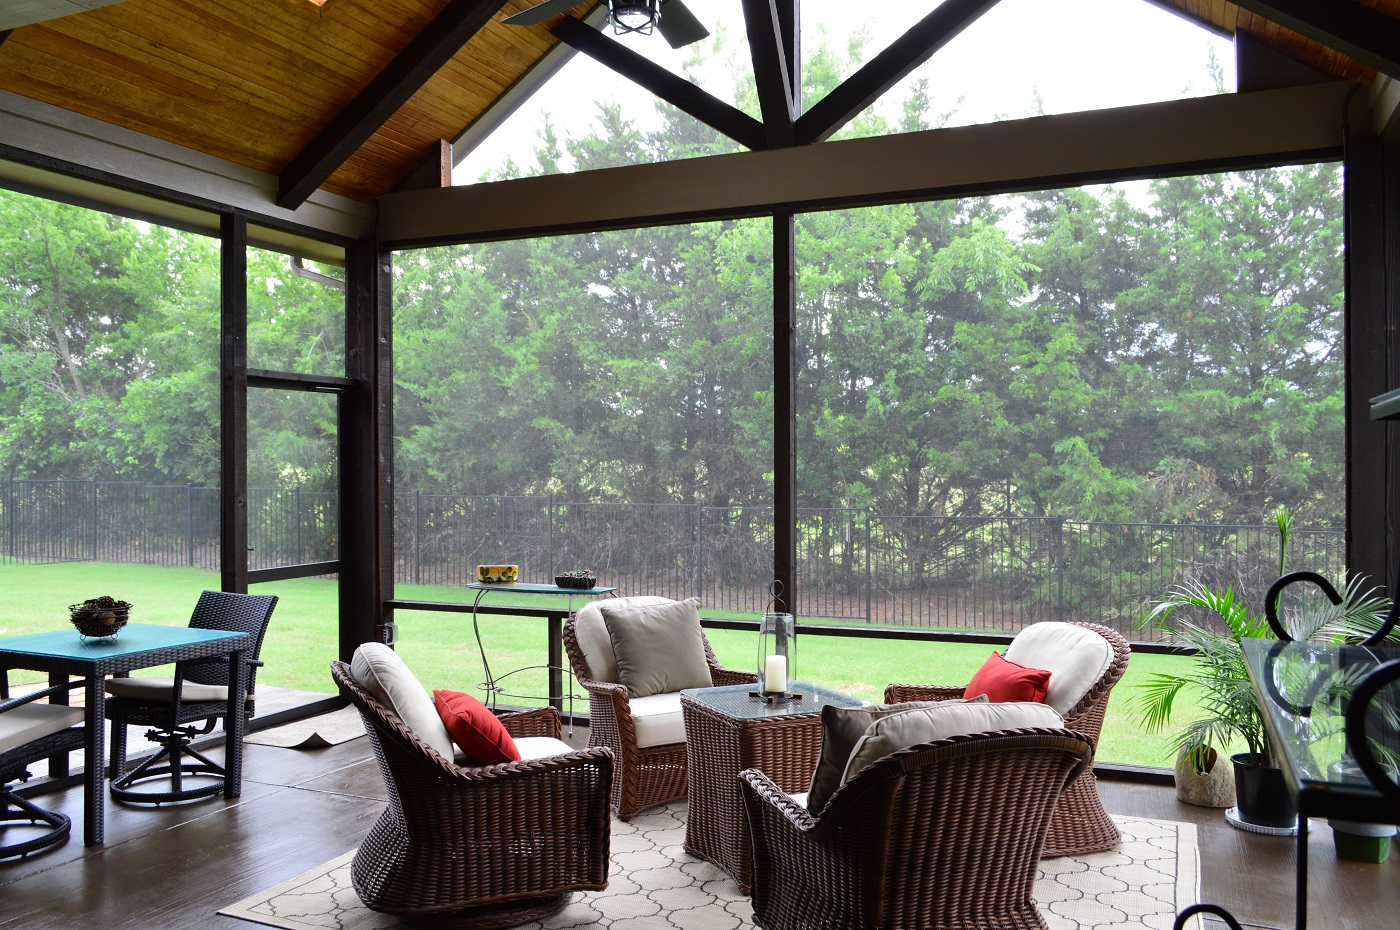 can a screened porch or patio add value